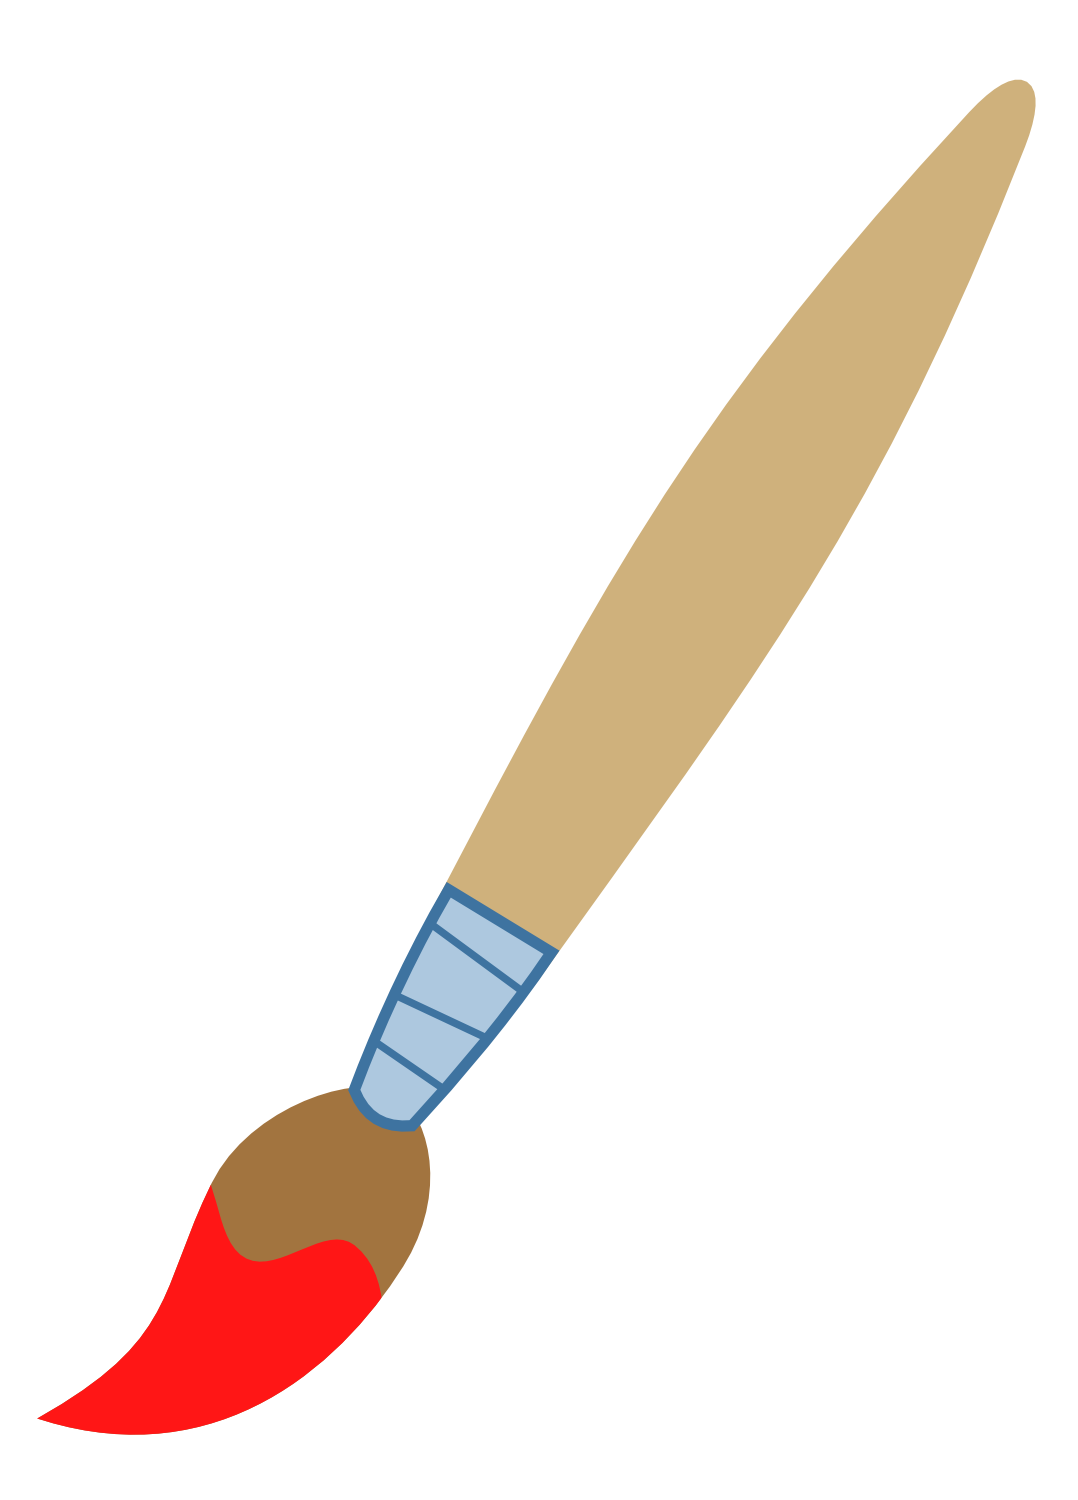 X clipart brush. Artist s paint request